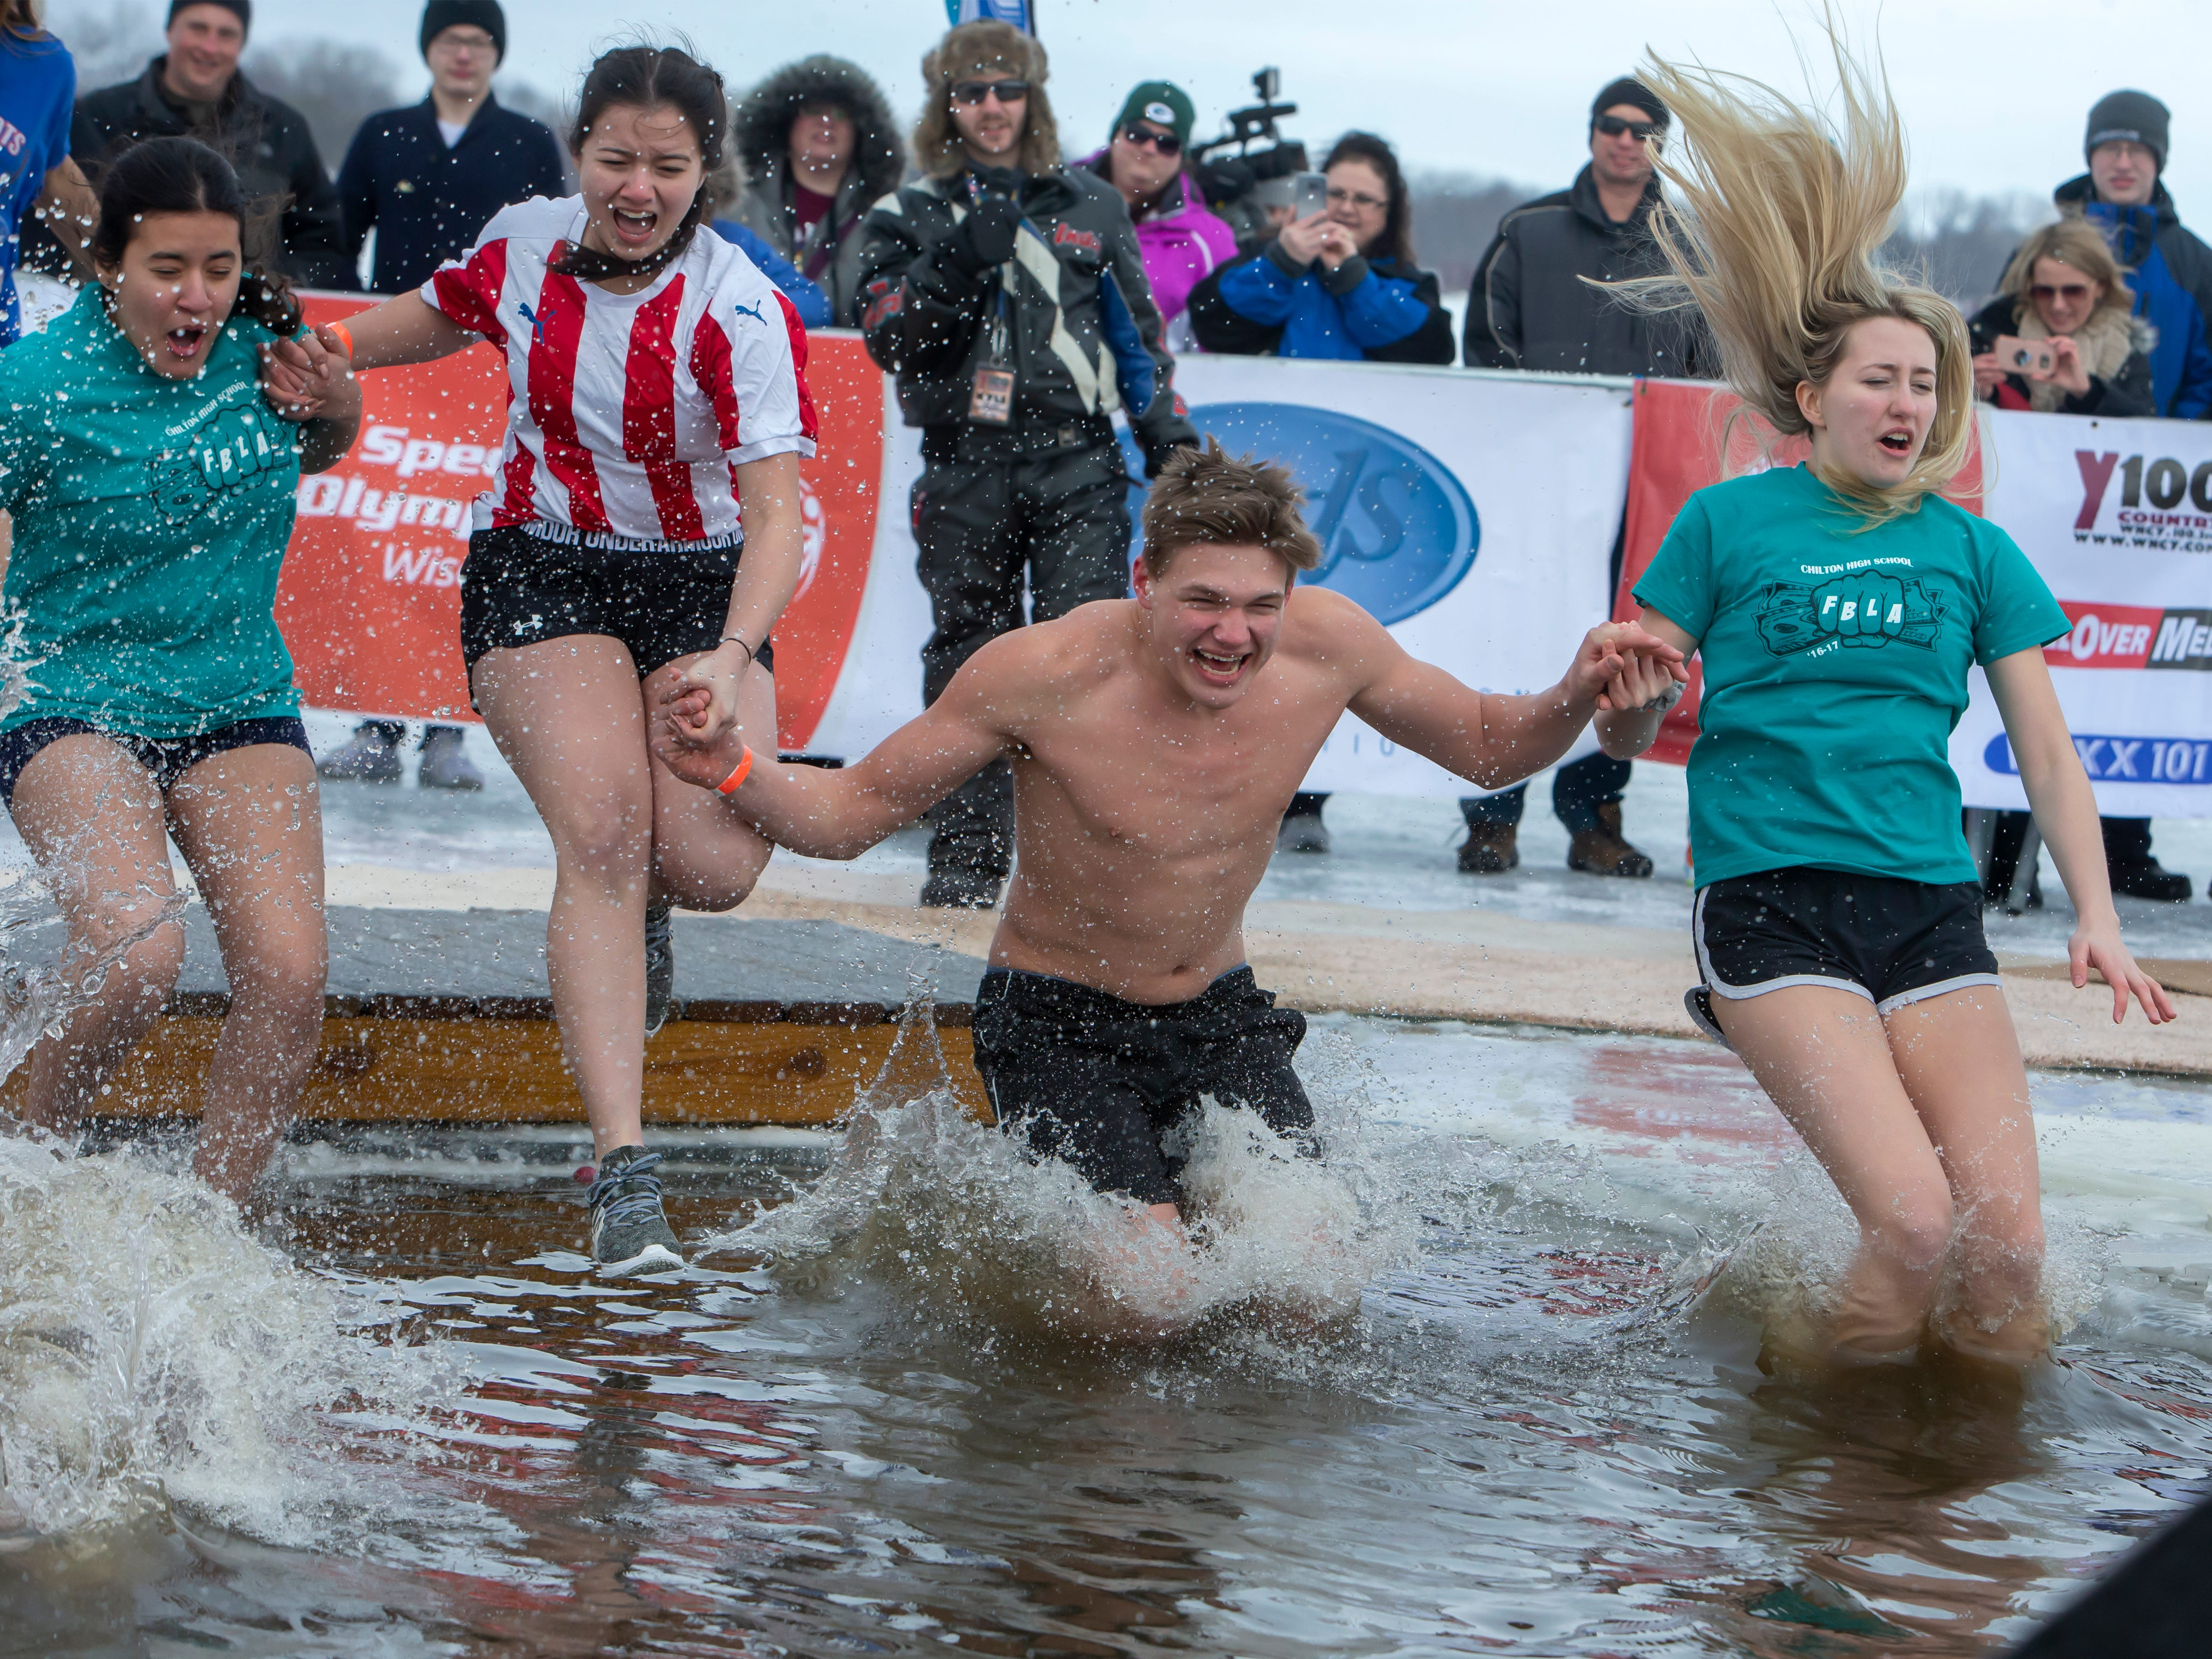 Chilton High School student take the plunge during the Special Olympics Wisconsin Polar Plunge in Oshkosh, Wis., on Saturday, February 16, 2019, at Miller's Bay in Menominee Park.